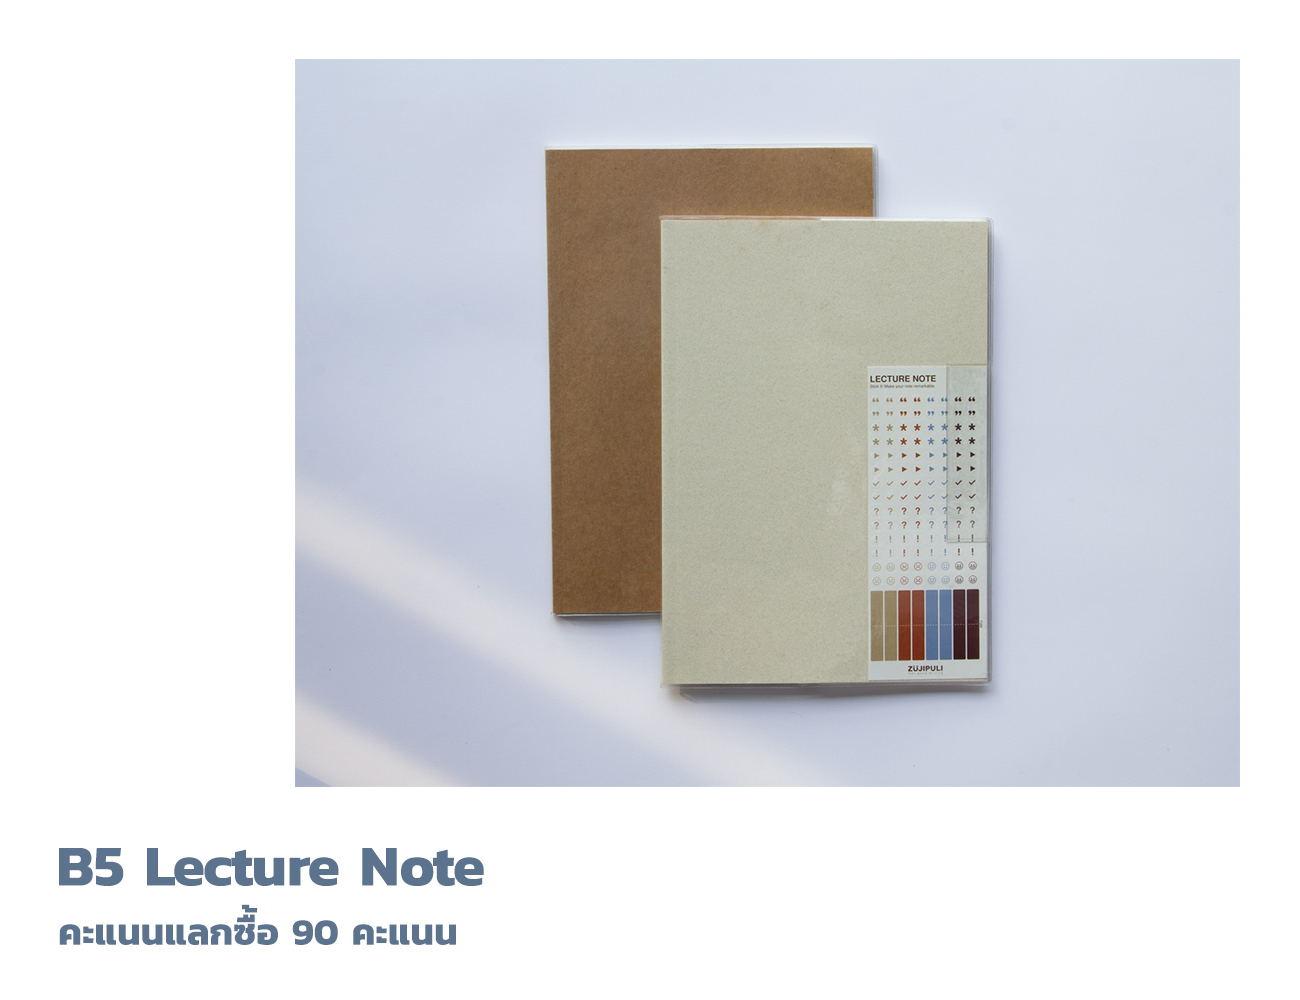 B5 Lecture Note